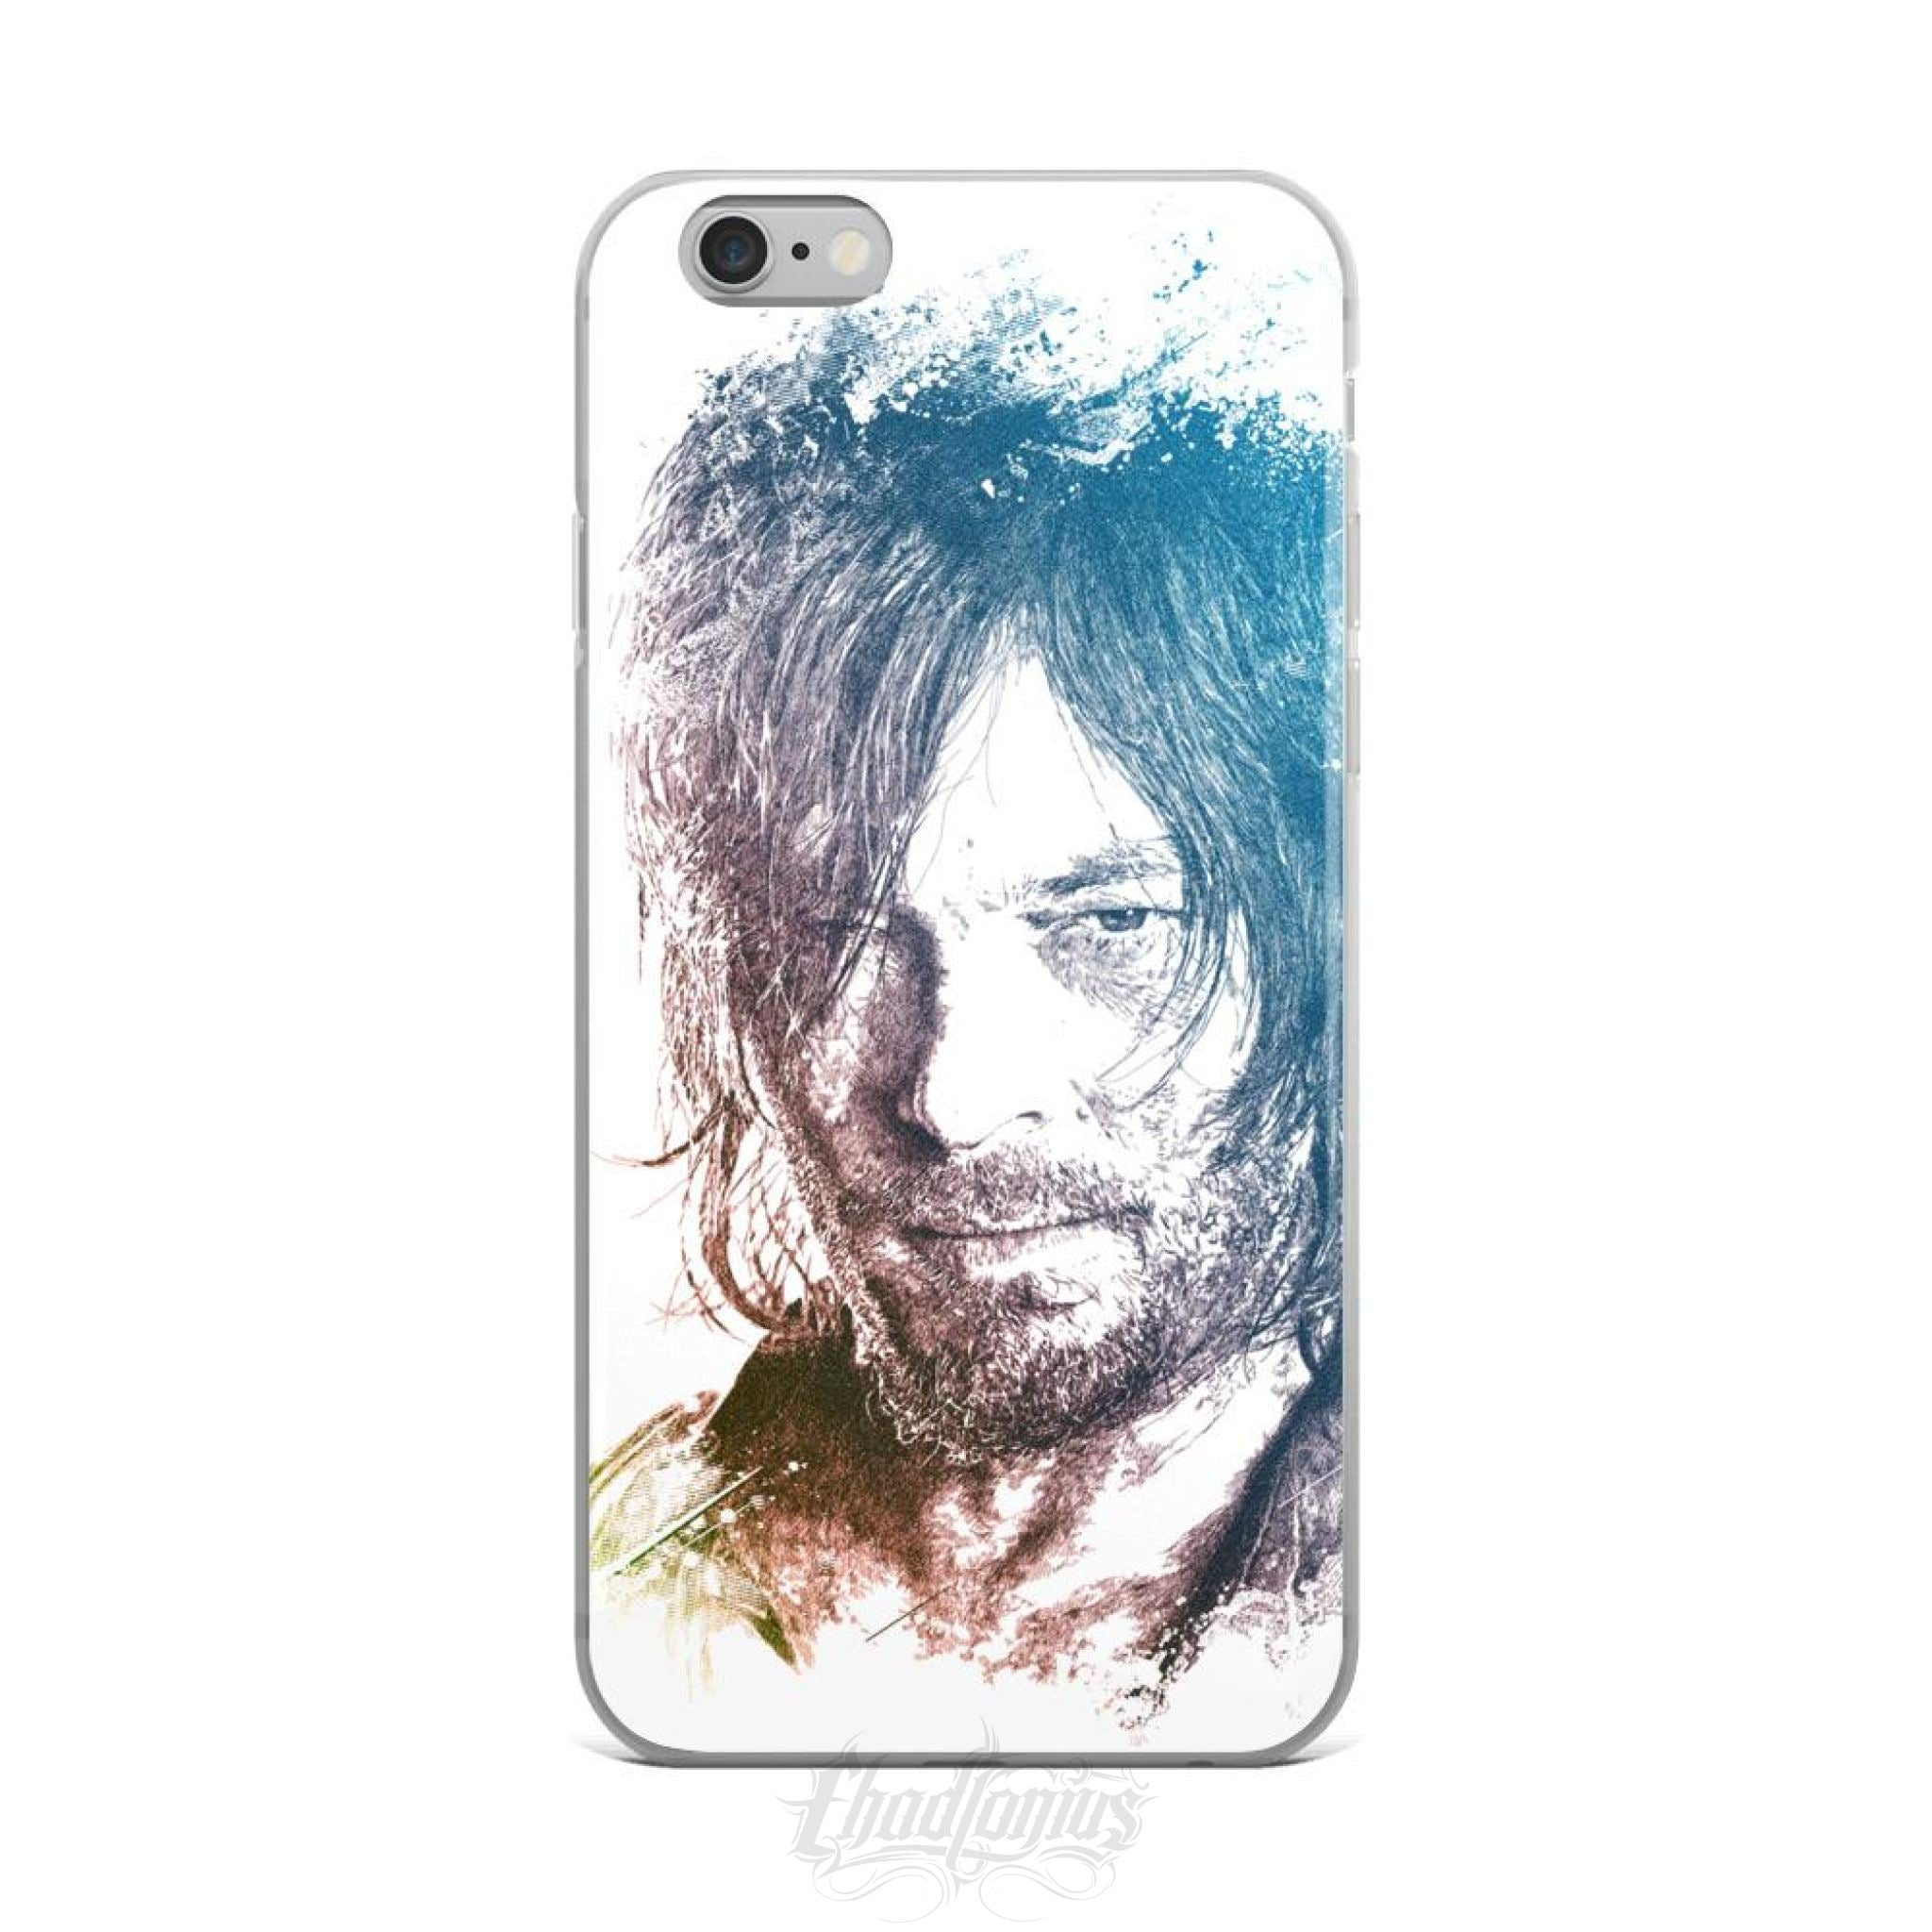 Daryl Dixon - Iphone Case 6 Plus/6S Plus Accessories Chadlonius